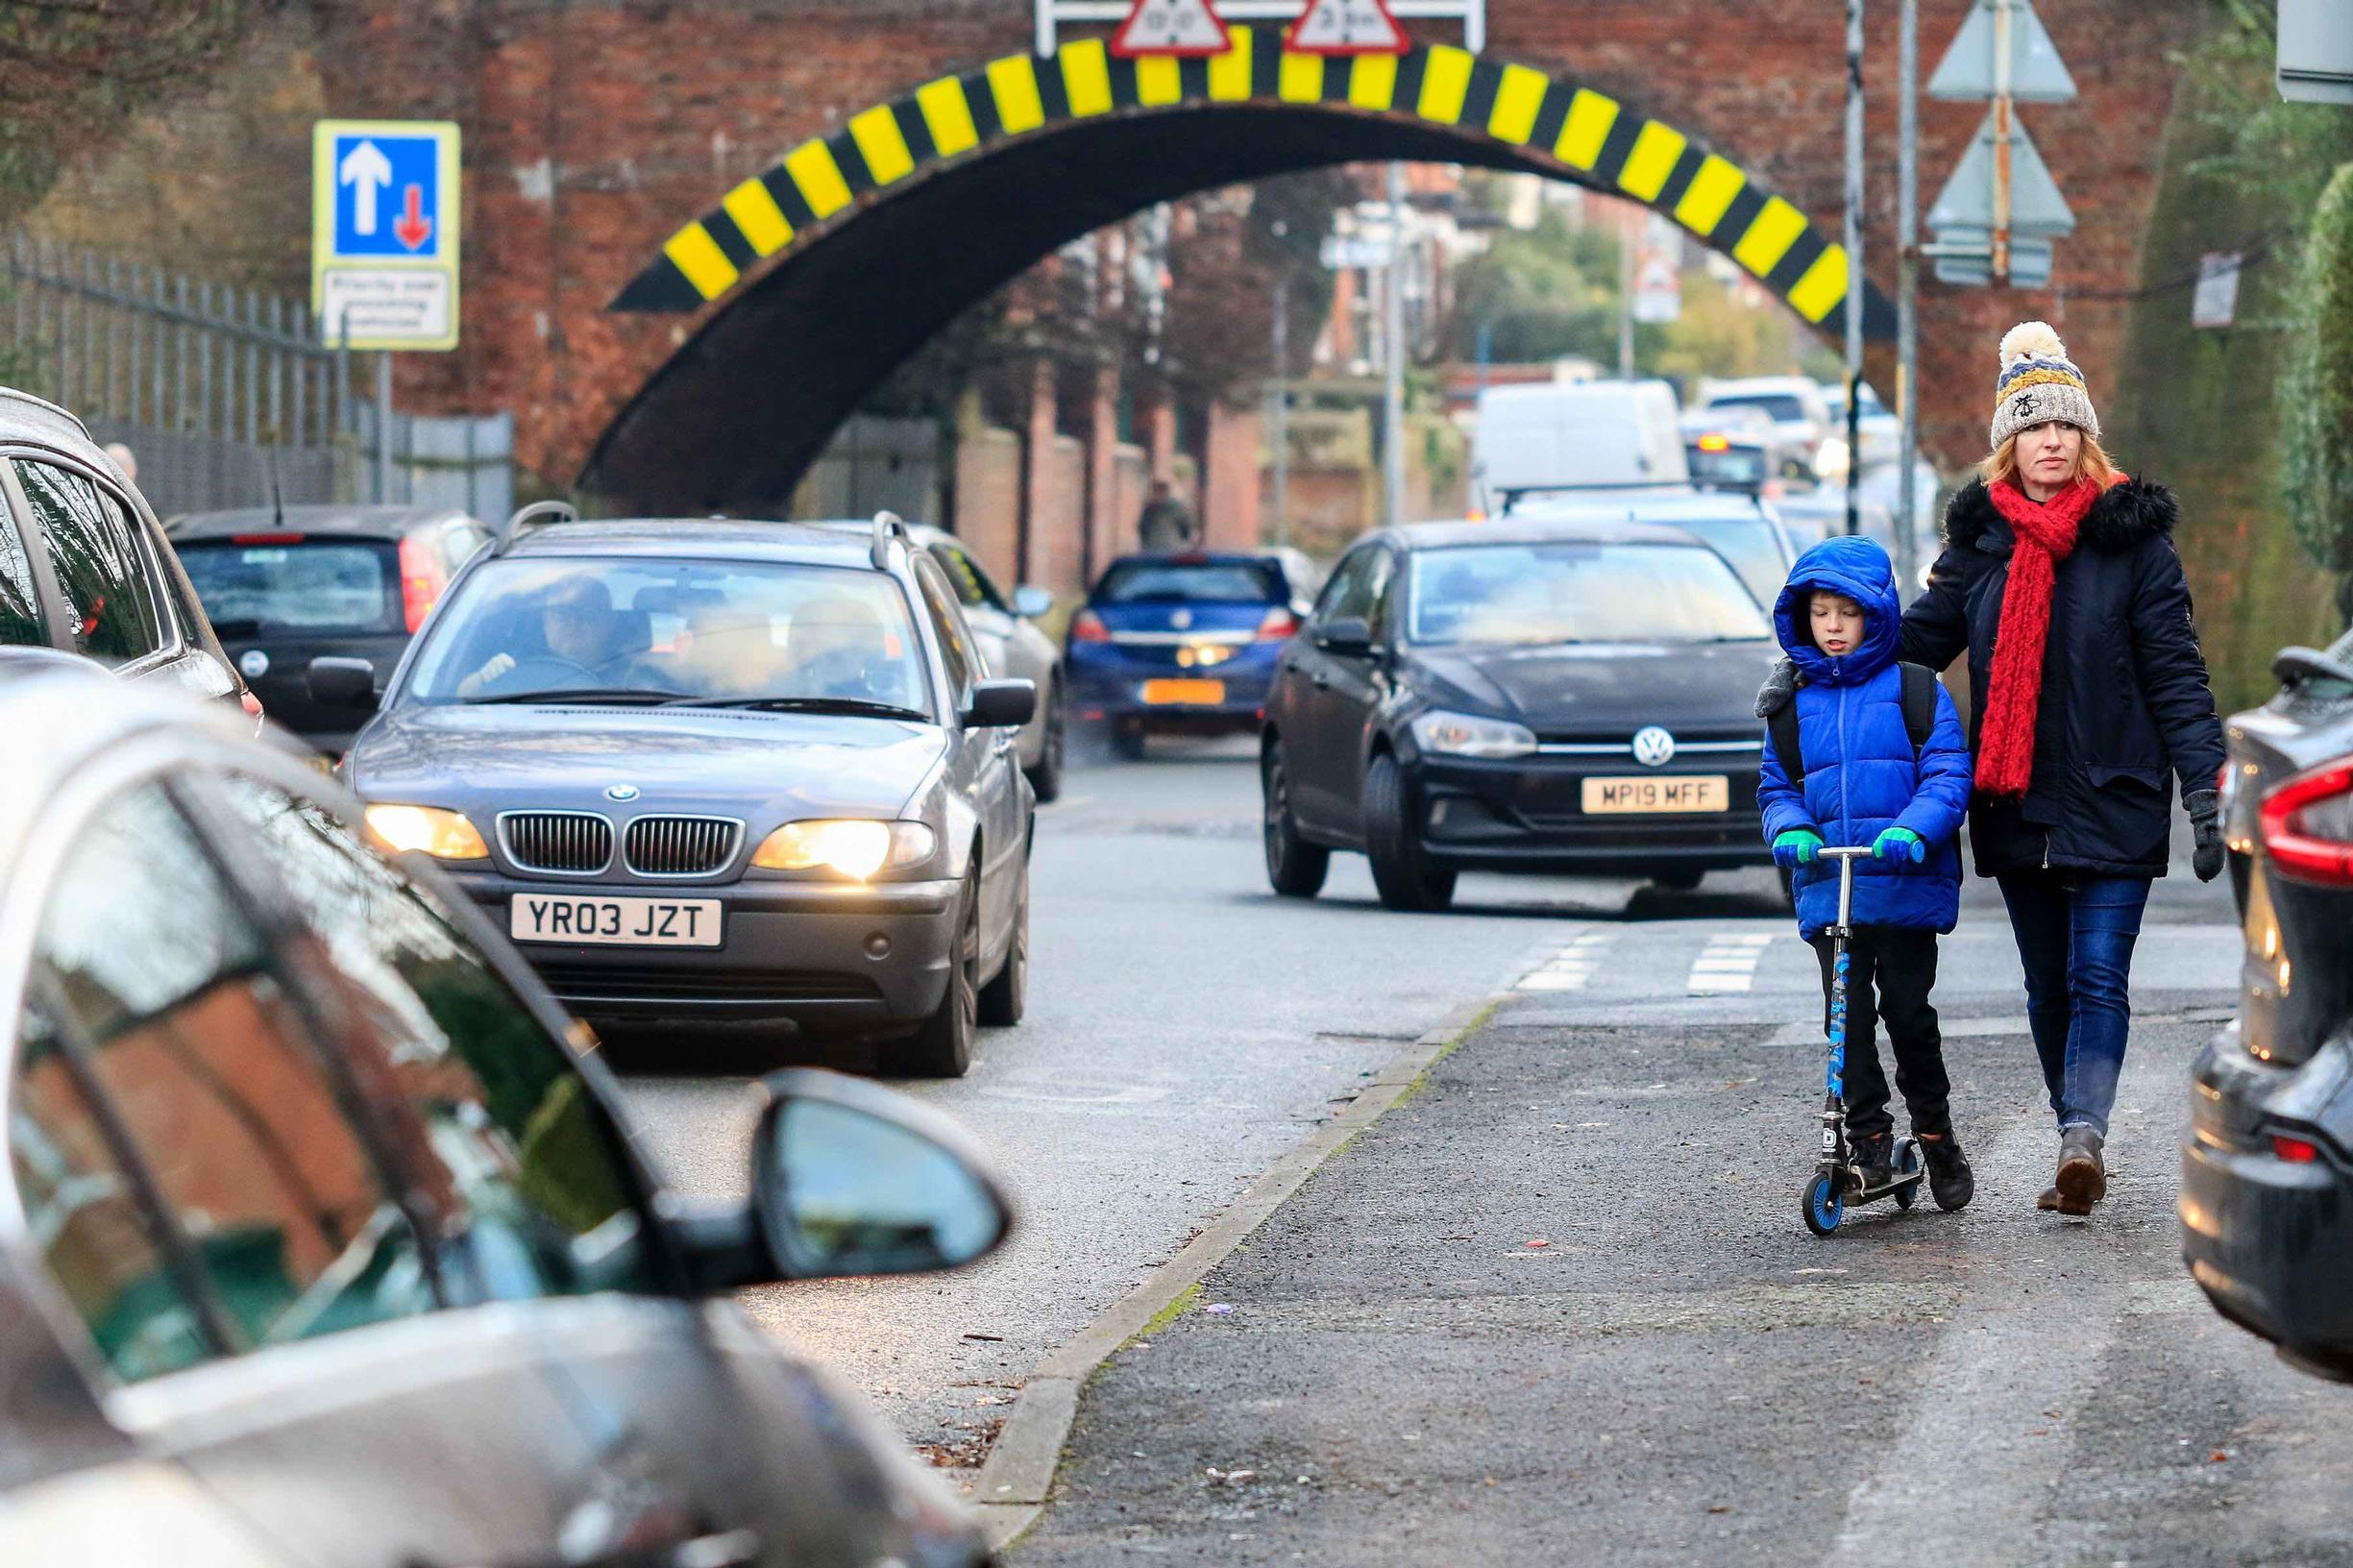 62% of parents cited congested roads as the key reason why they do not like the school run